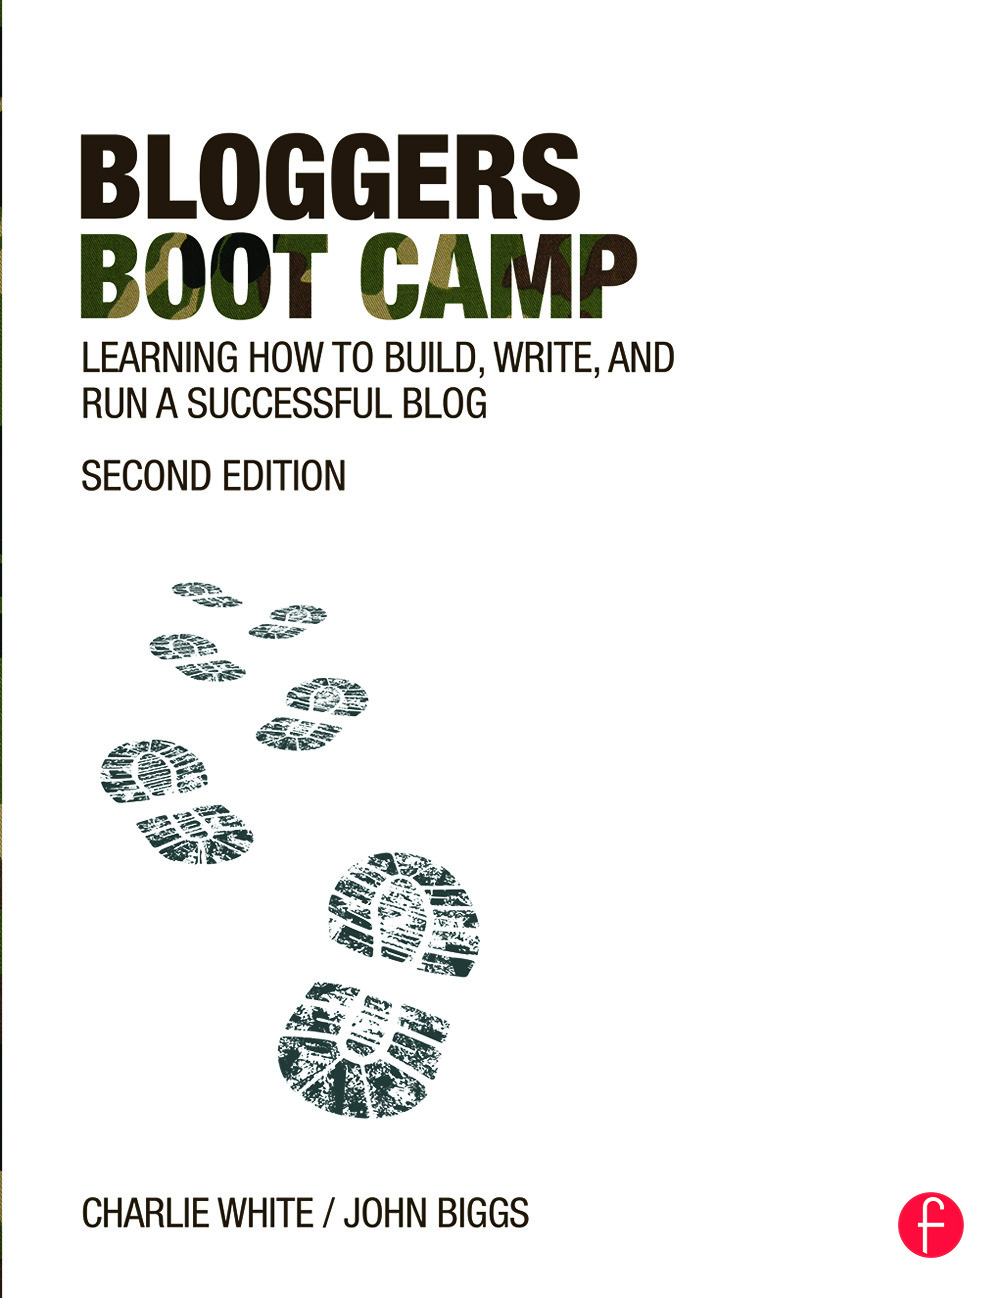 Bloggers Boot Camp: Learning How to Build, Write, and Run a Successful Blog book cover